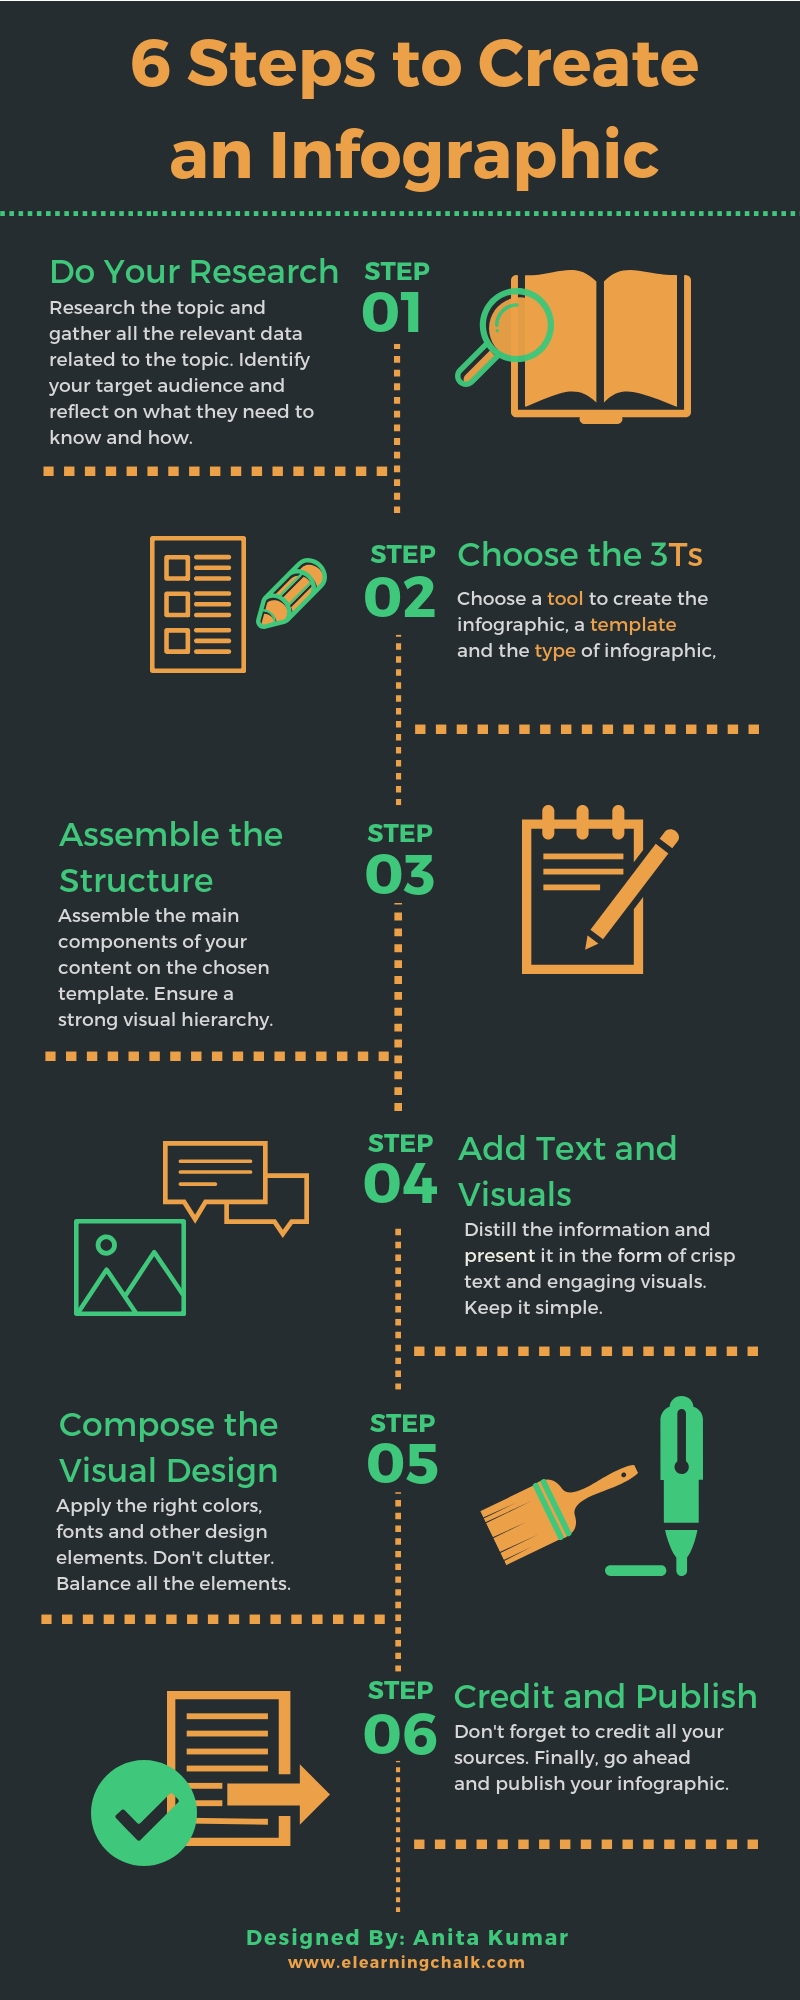 Steps to Creat an Infographic